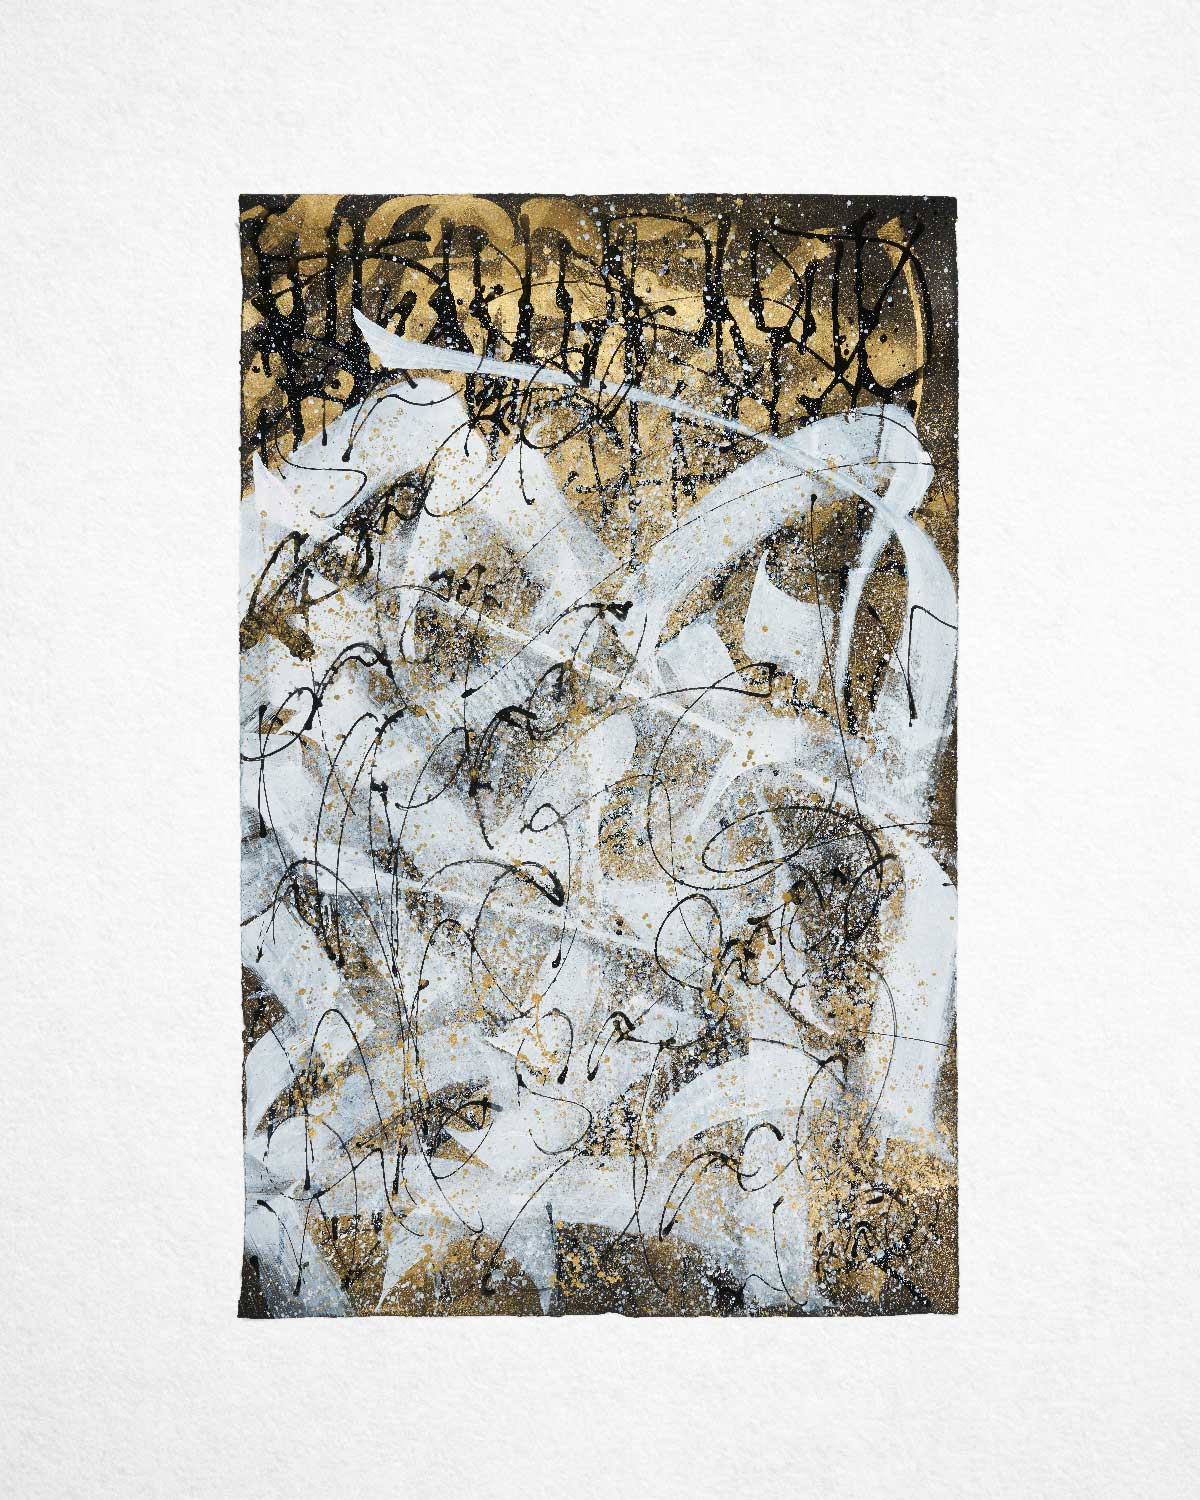 Sacred Place 02, artwork on paper by Said Dokins